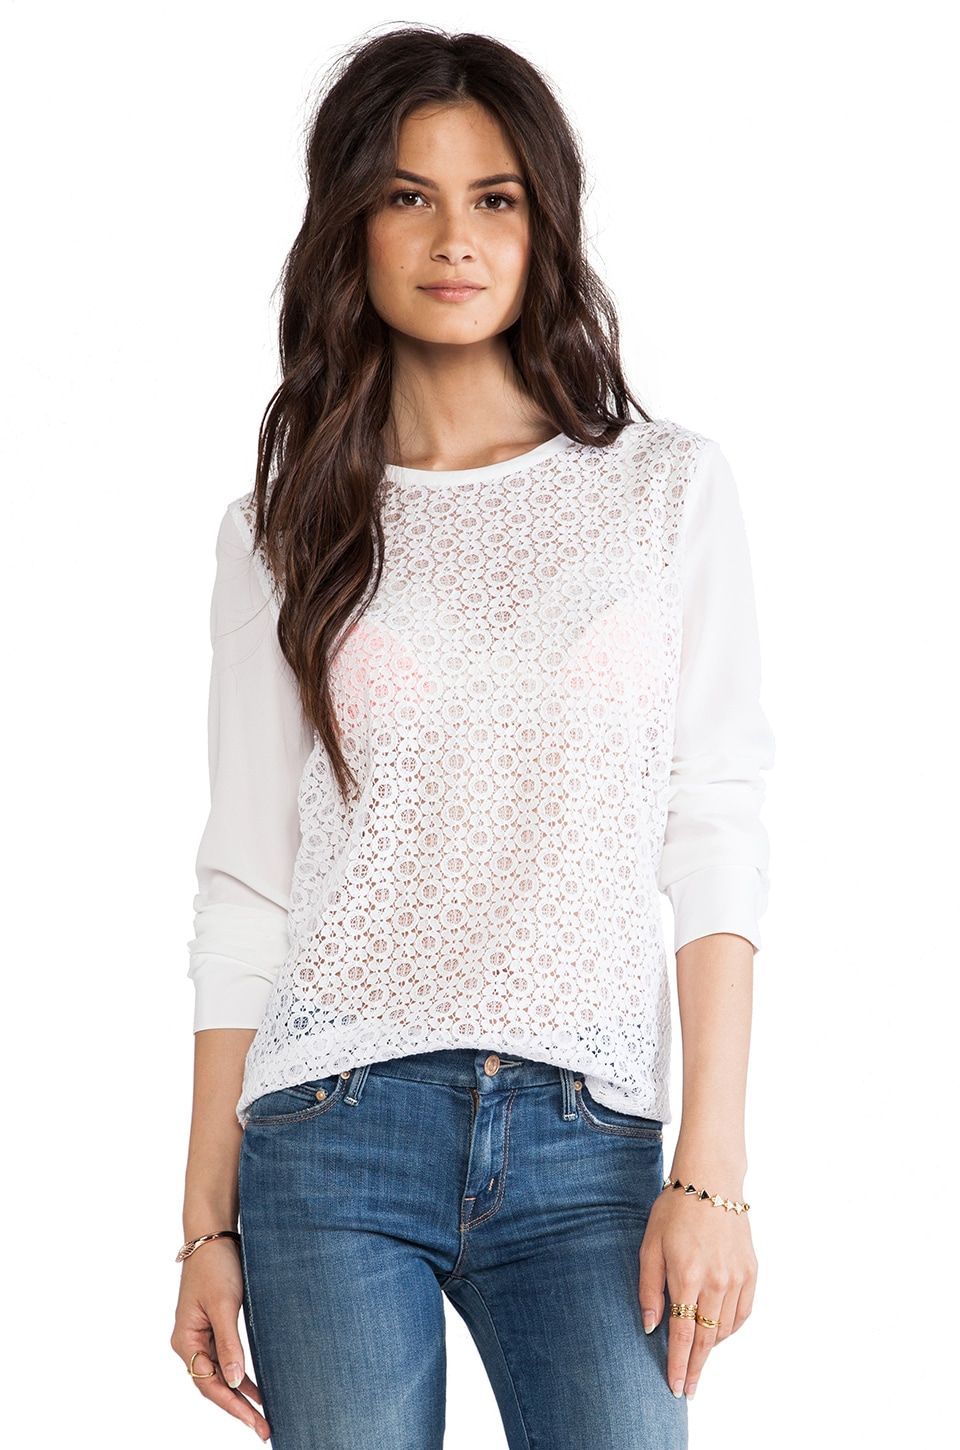 Equipment Liam Revival Lace Blouse in Bright White